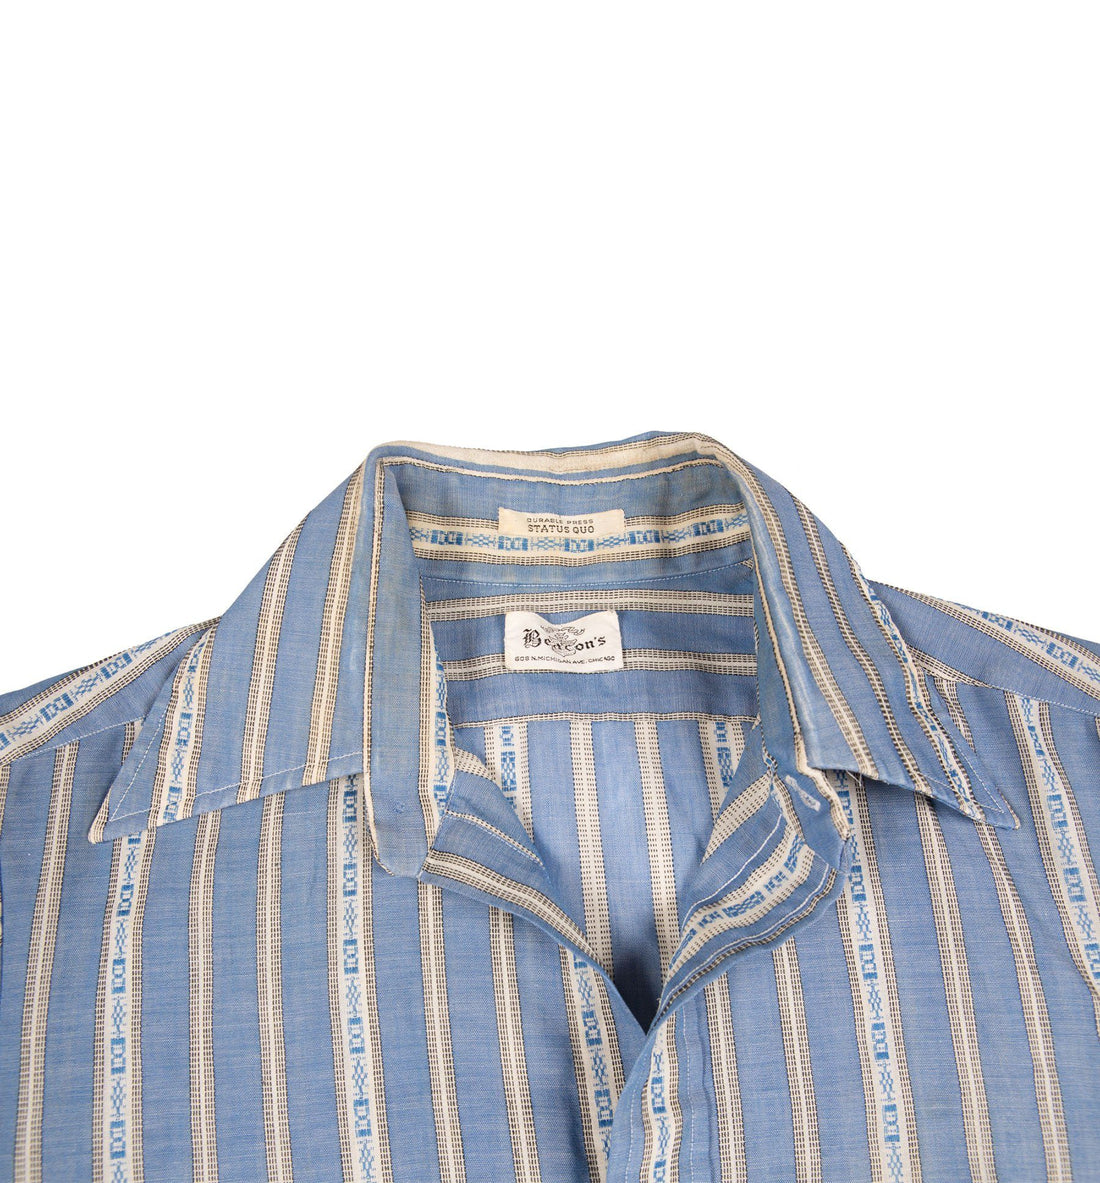 60's Beacon's Short Sleeve Button up Shirt - Vintage - Iron and Resin